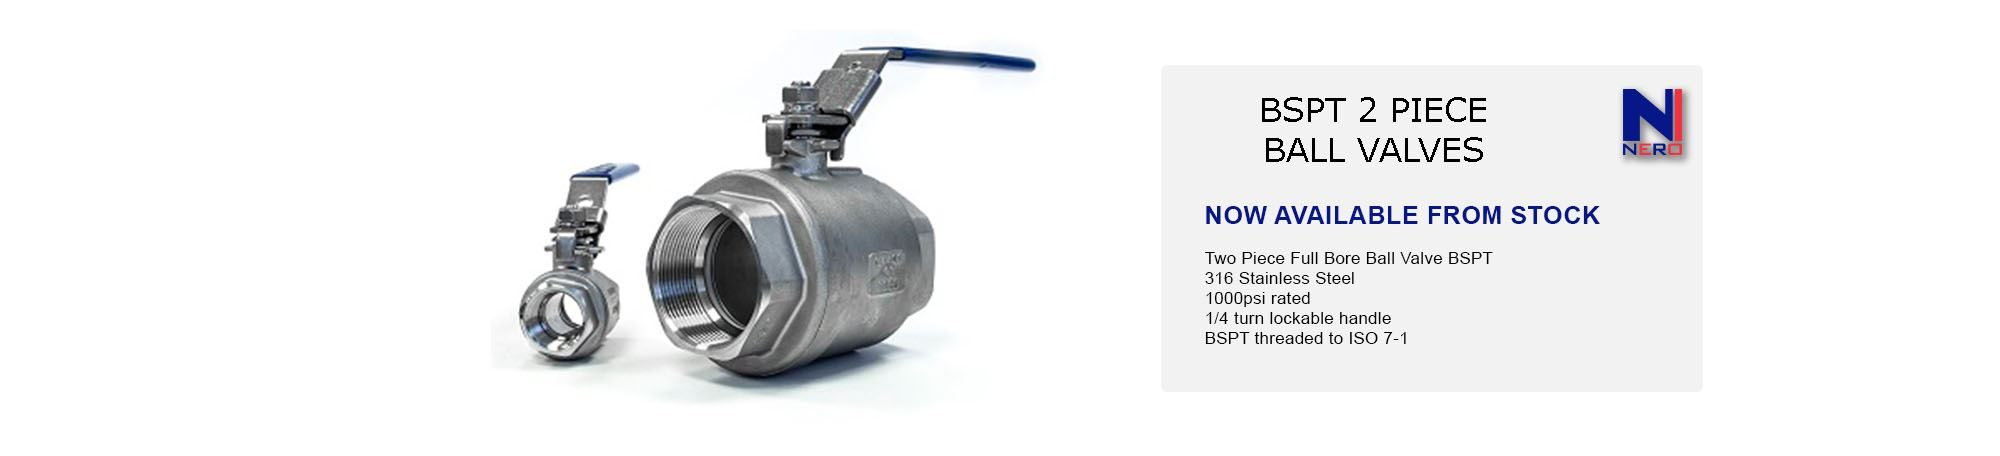 Two Piece Full Bore Ball Valve BSPT